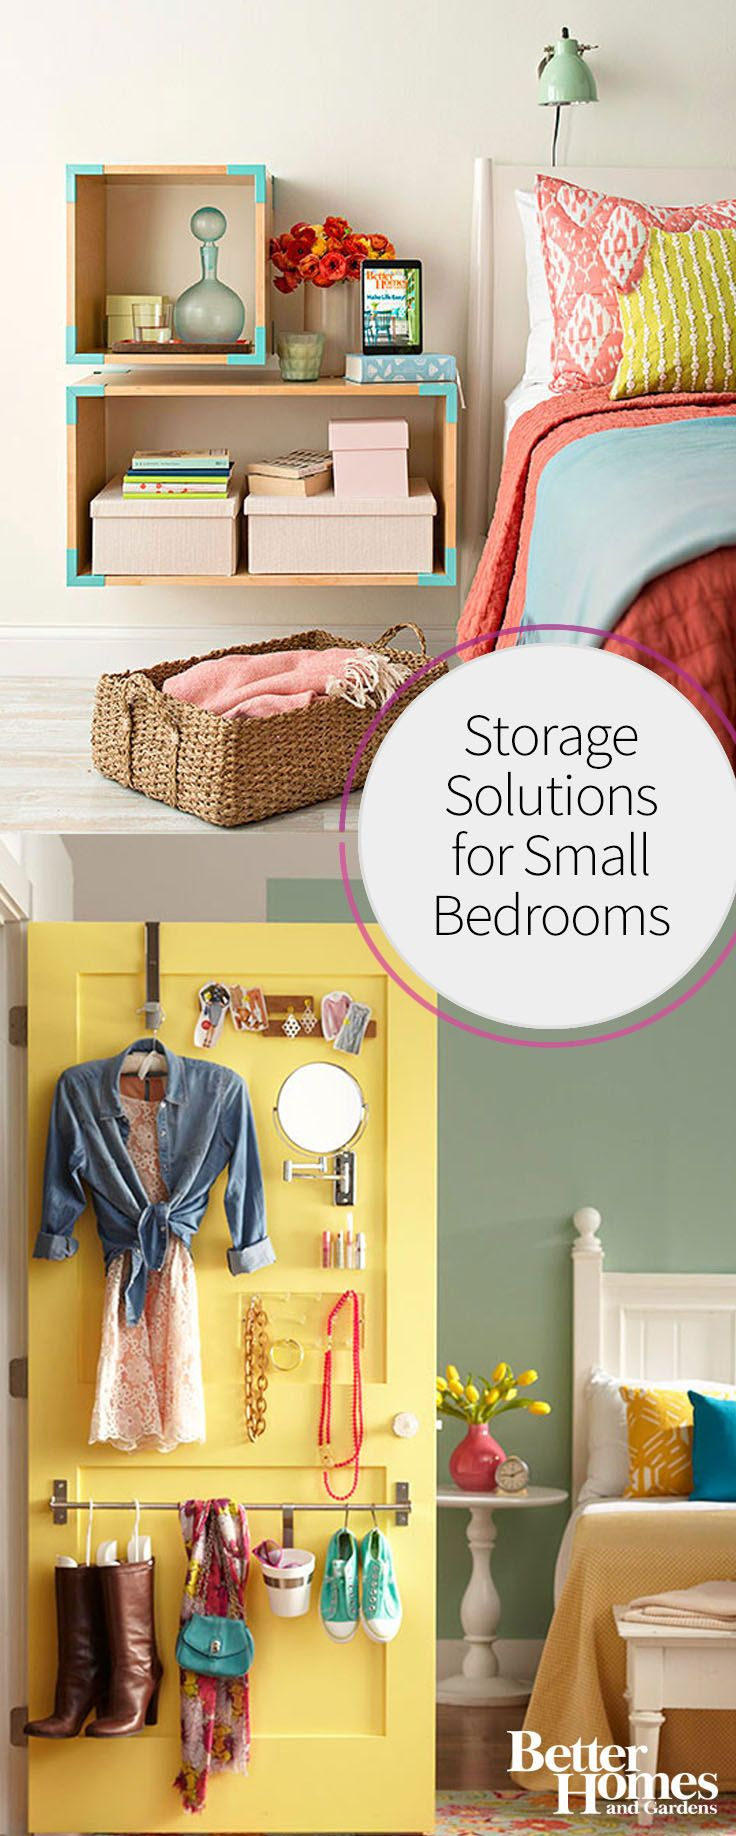 Small Bedroom Wardrobe Solutions 17 Best Ideas About Small Bedroom Storage On Pinterest Bedroom